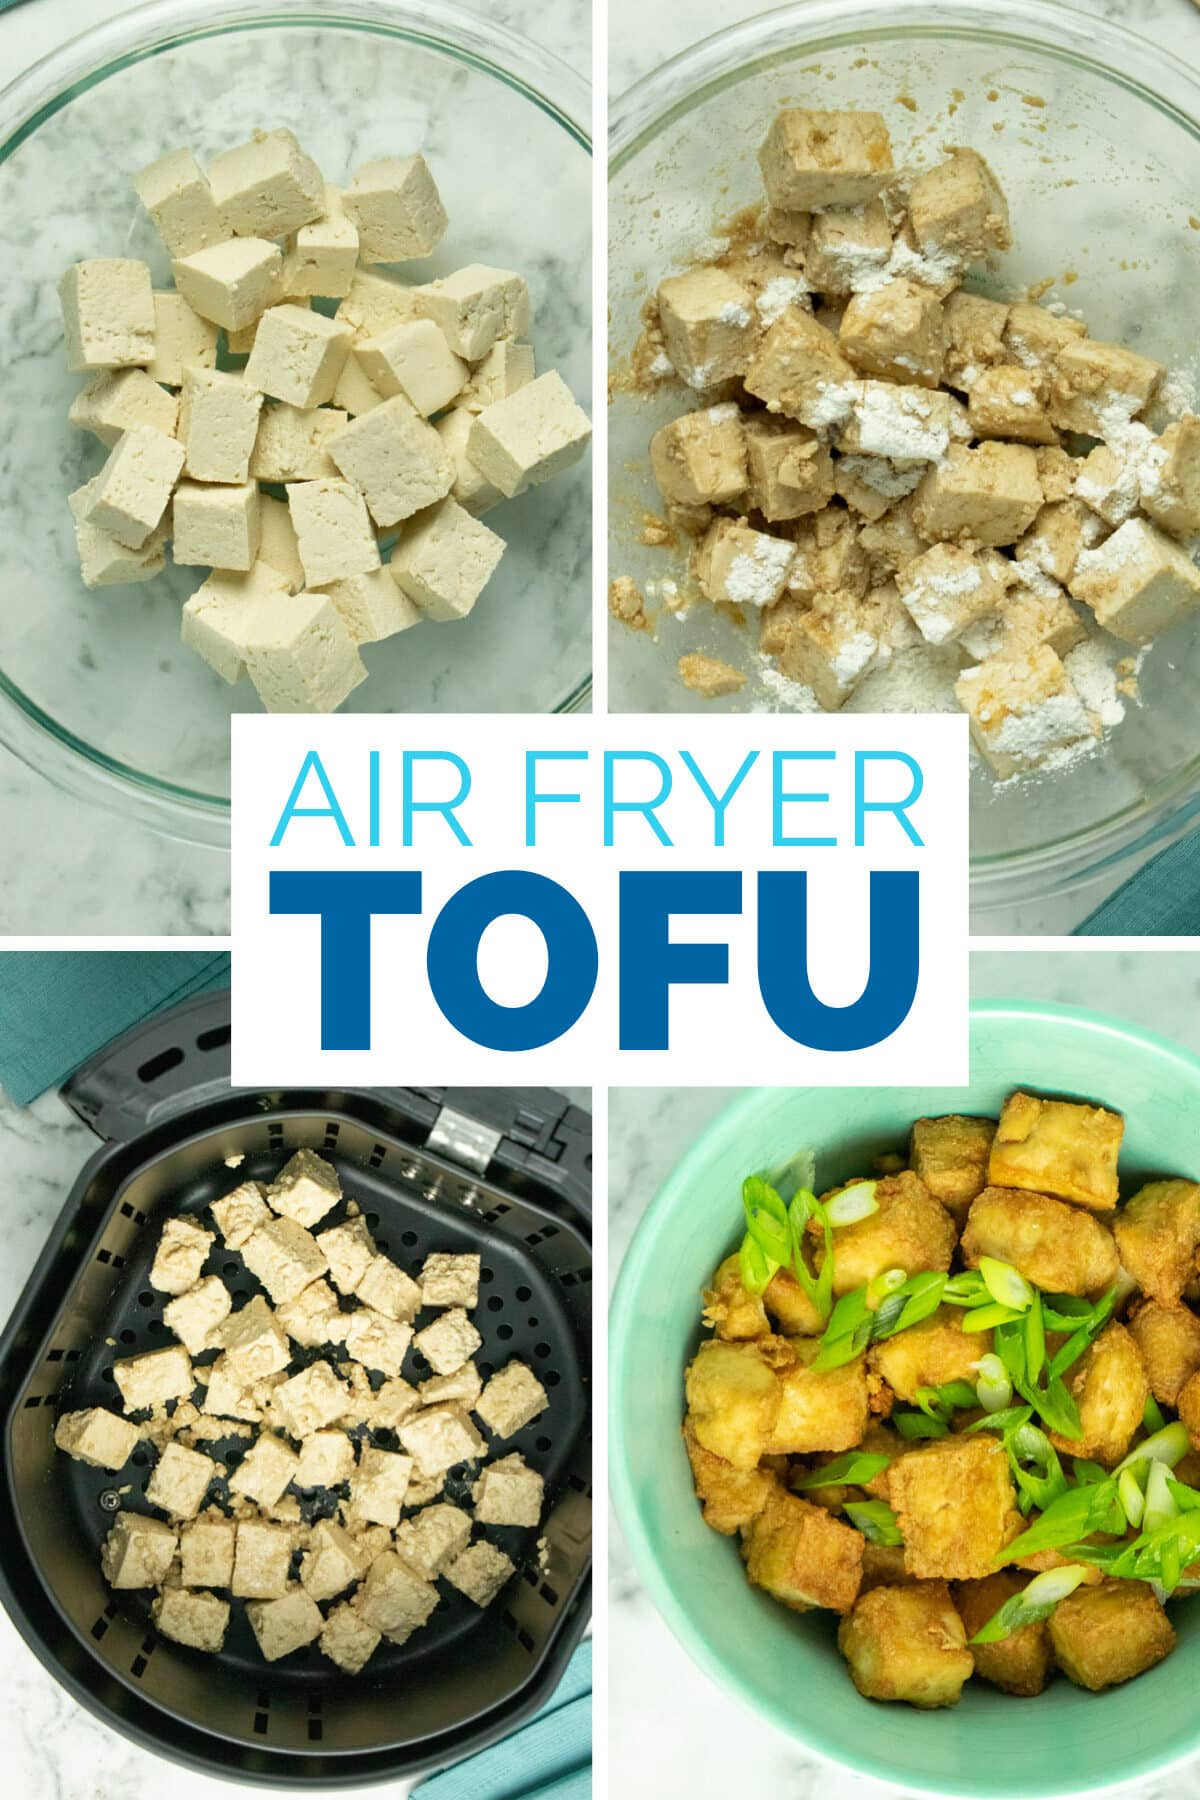 image collage of cubed tofu, tofu with marinade and cornstarch, uncooked tofu in the air fryer basket, and air fryer tofu in a bowl